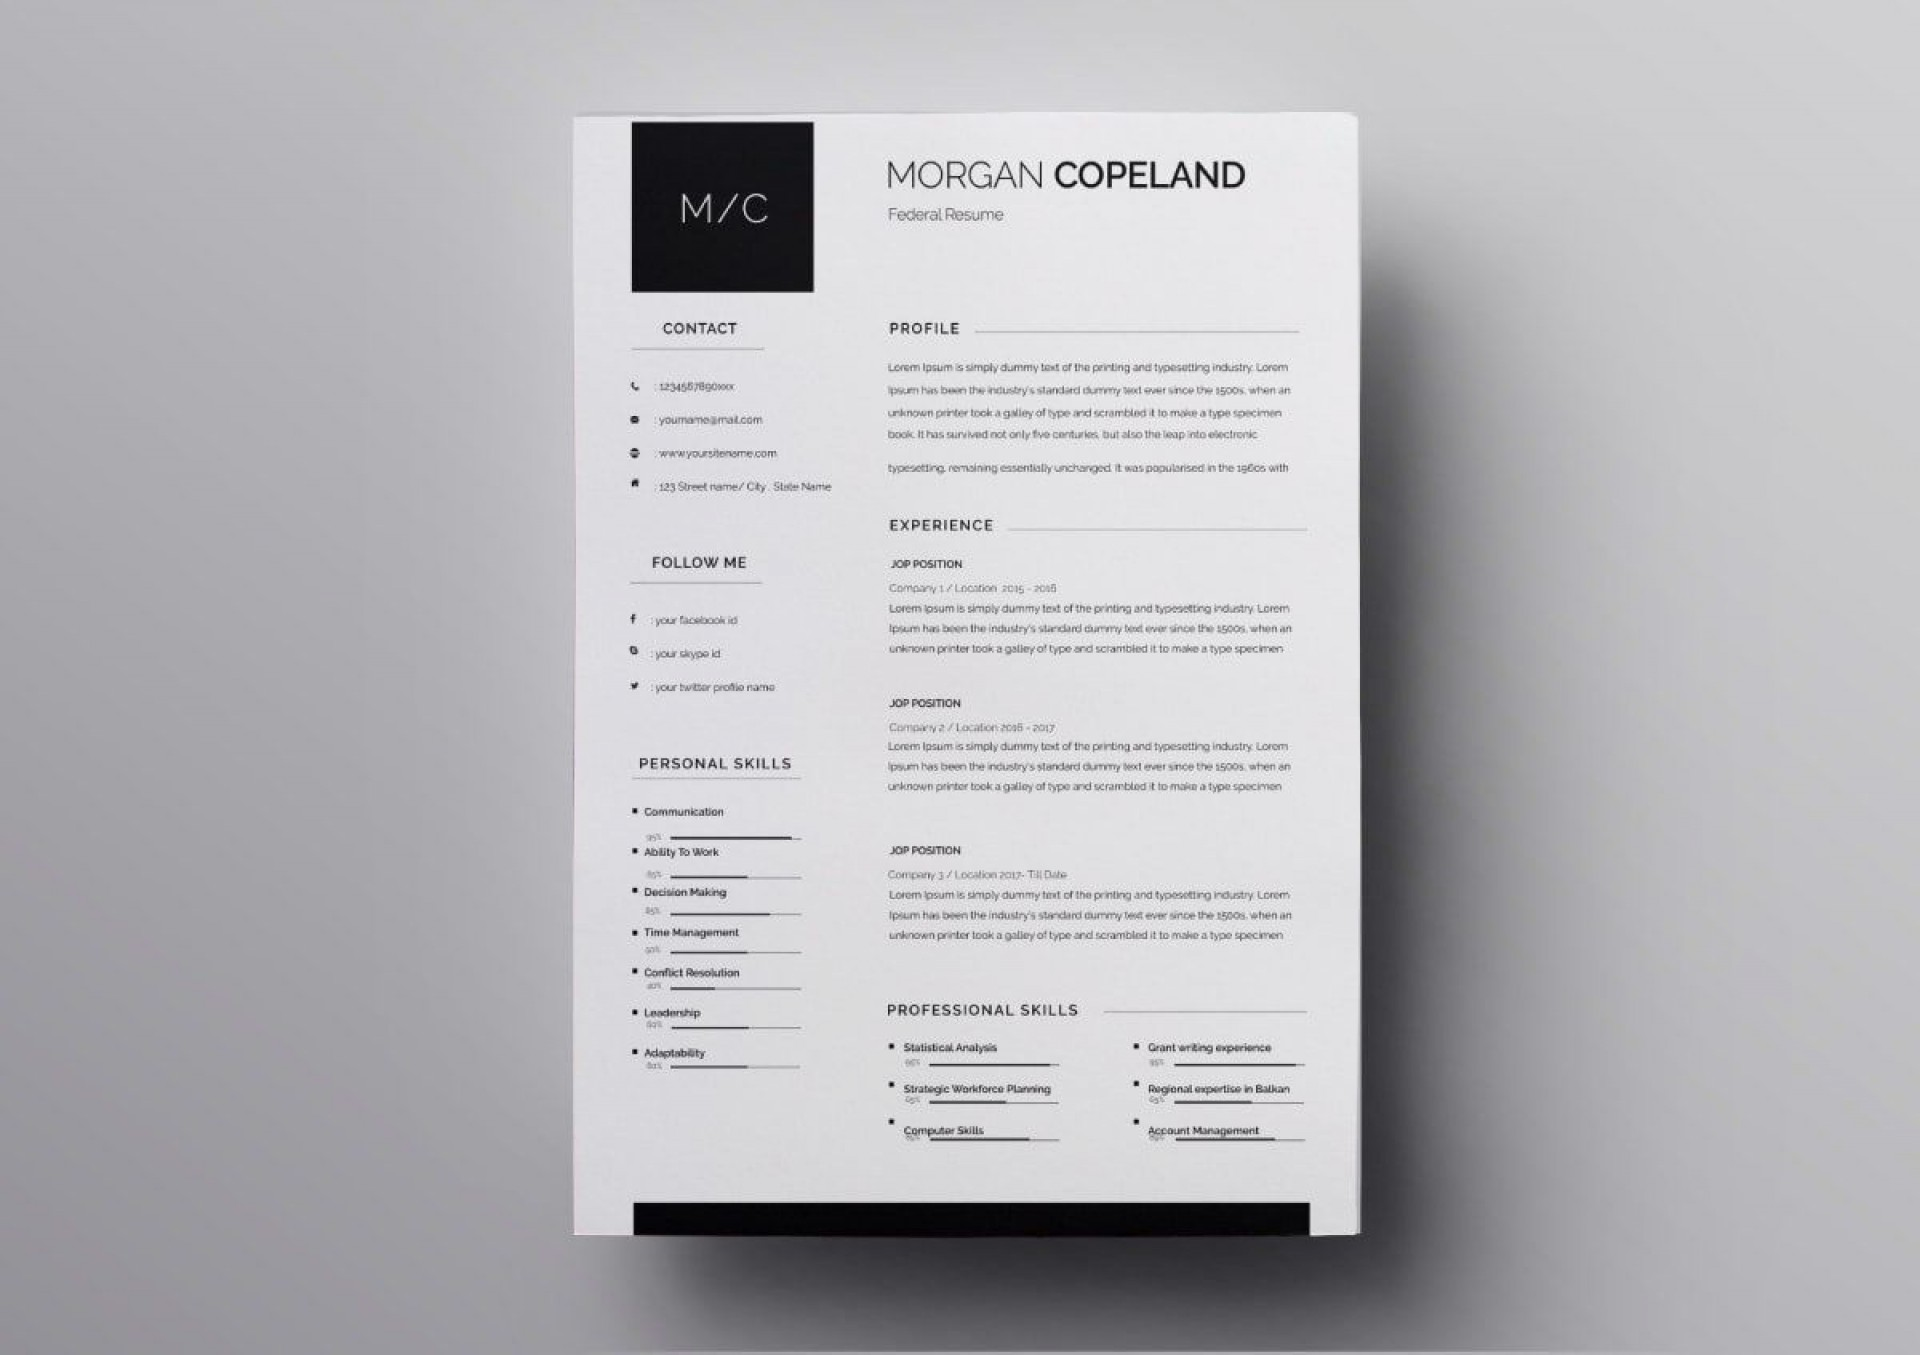 009 Incredible Free Resume Template For Page High Def  Pages Apple Mac1920